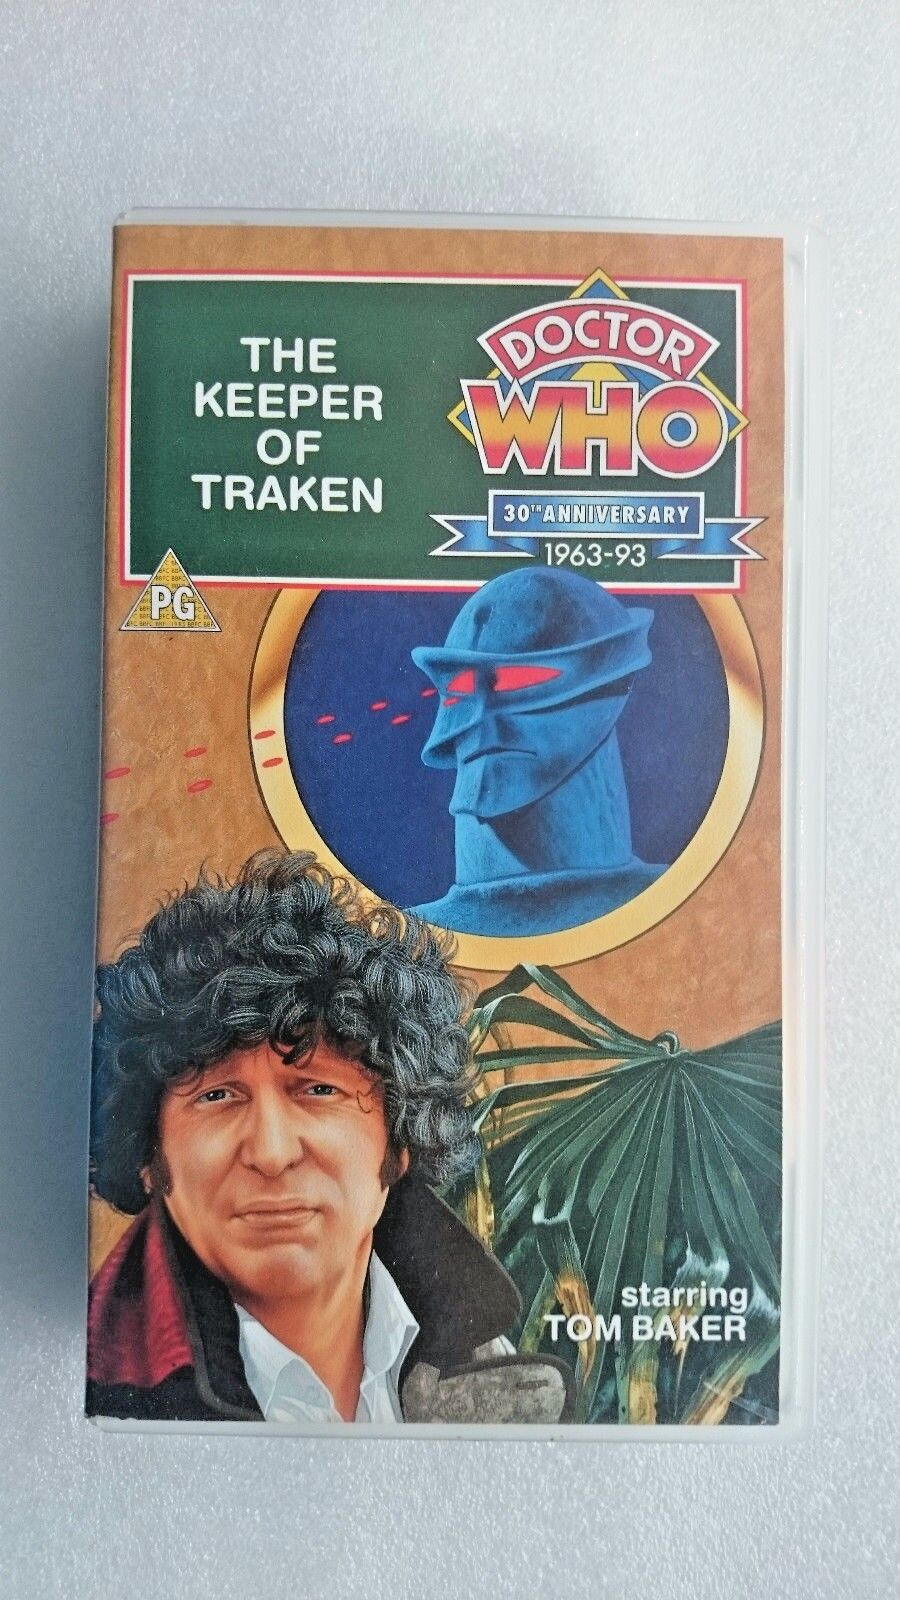 Doctor Who - The Keeper Of Traken (VHS, 1997) - Tom Baker